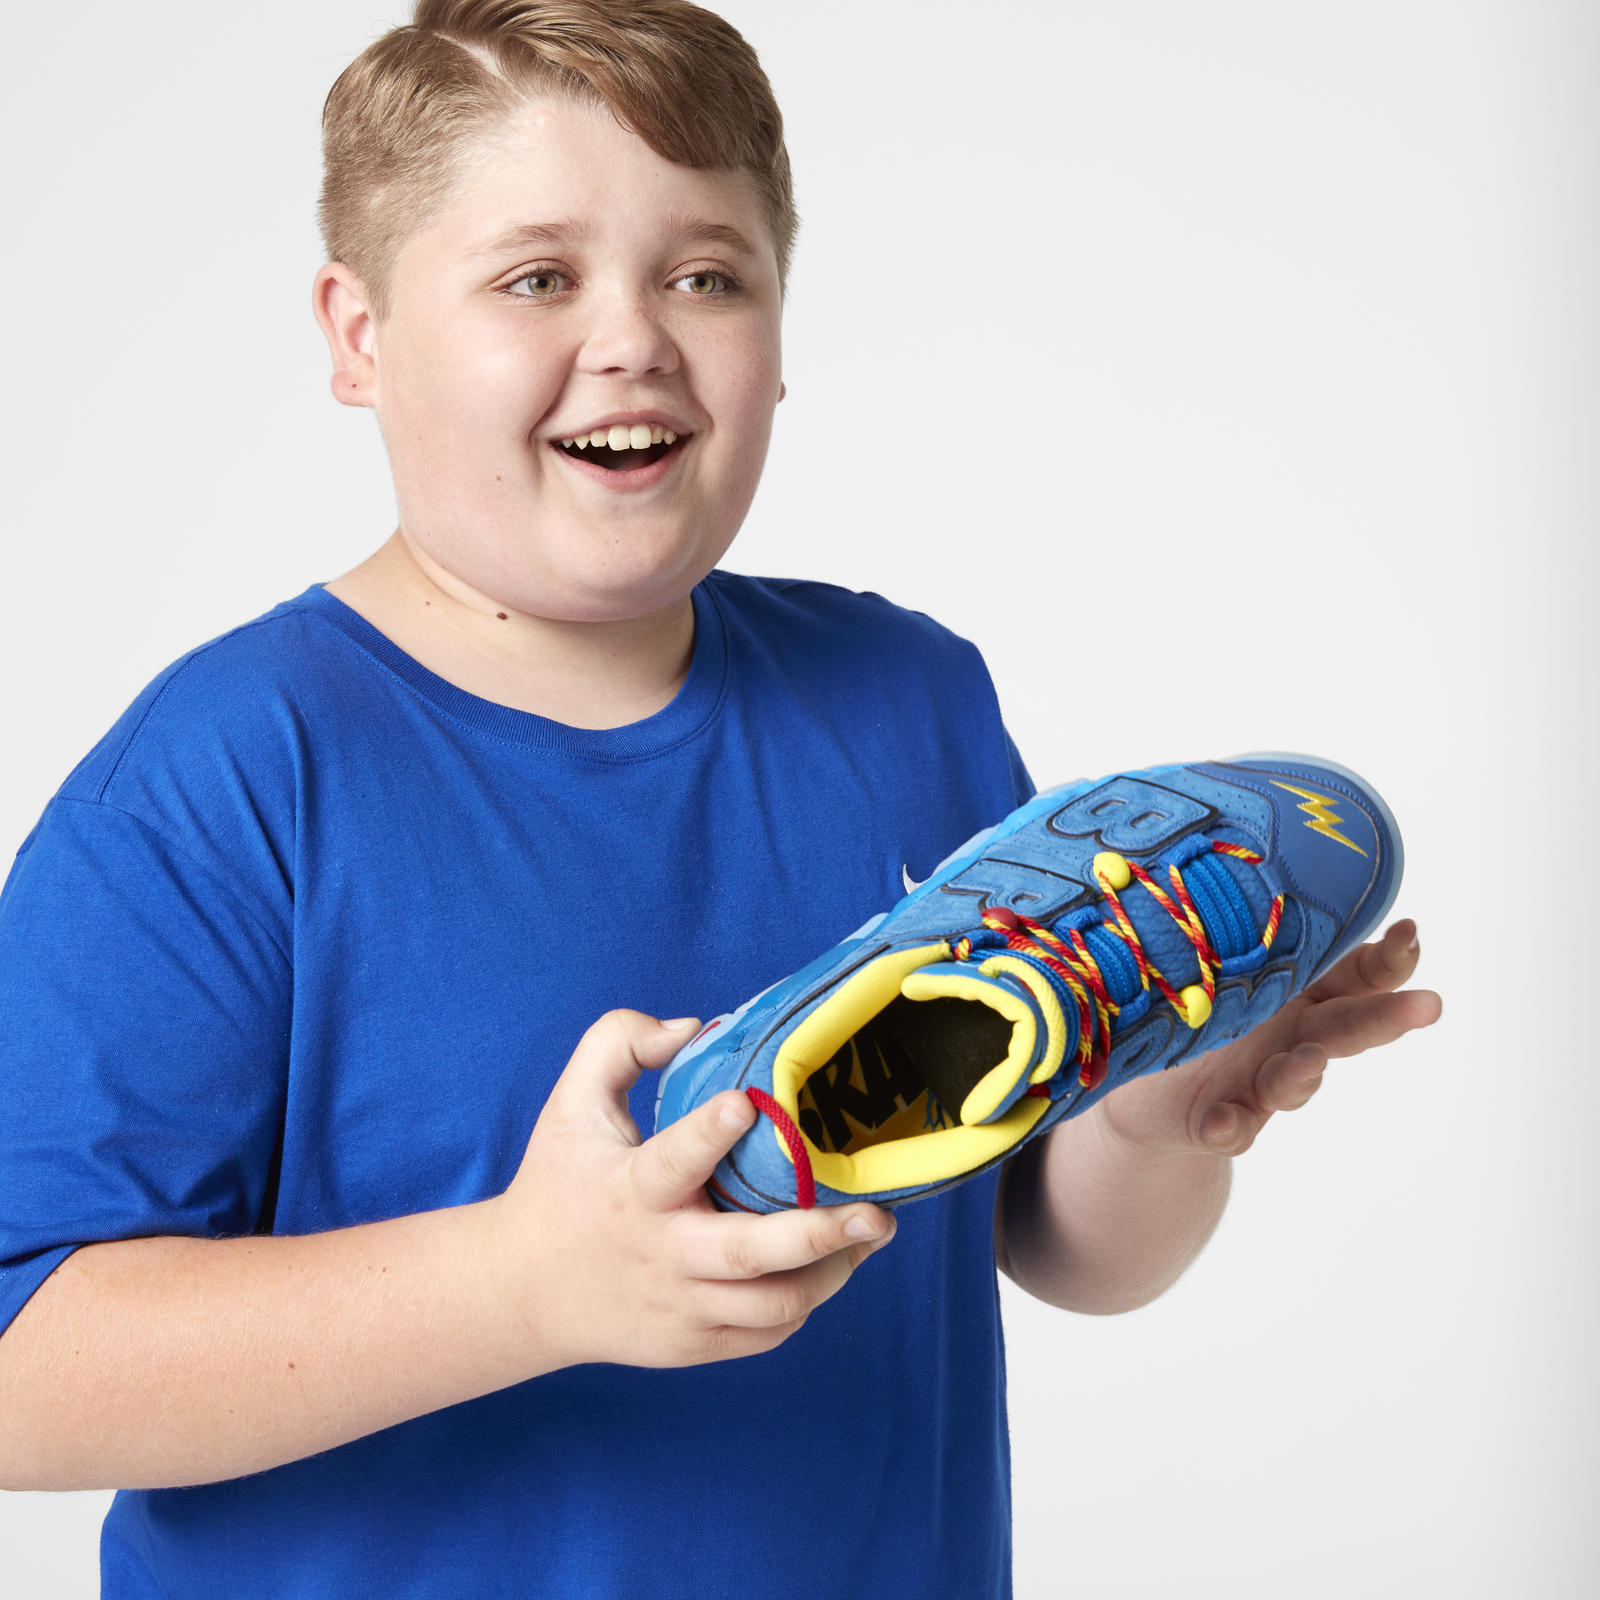 c6de3a02b271f2 What the Doernbecher Freestyle Program Means to the Sneaker Community 22